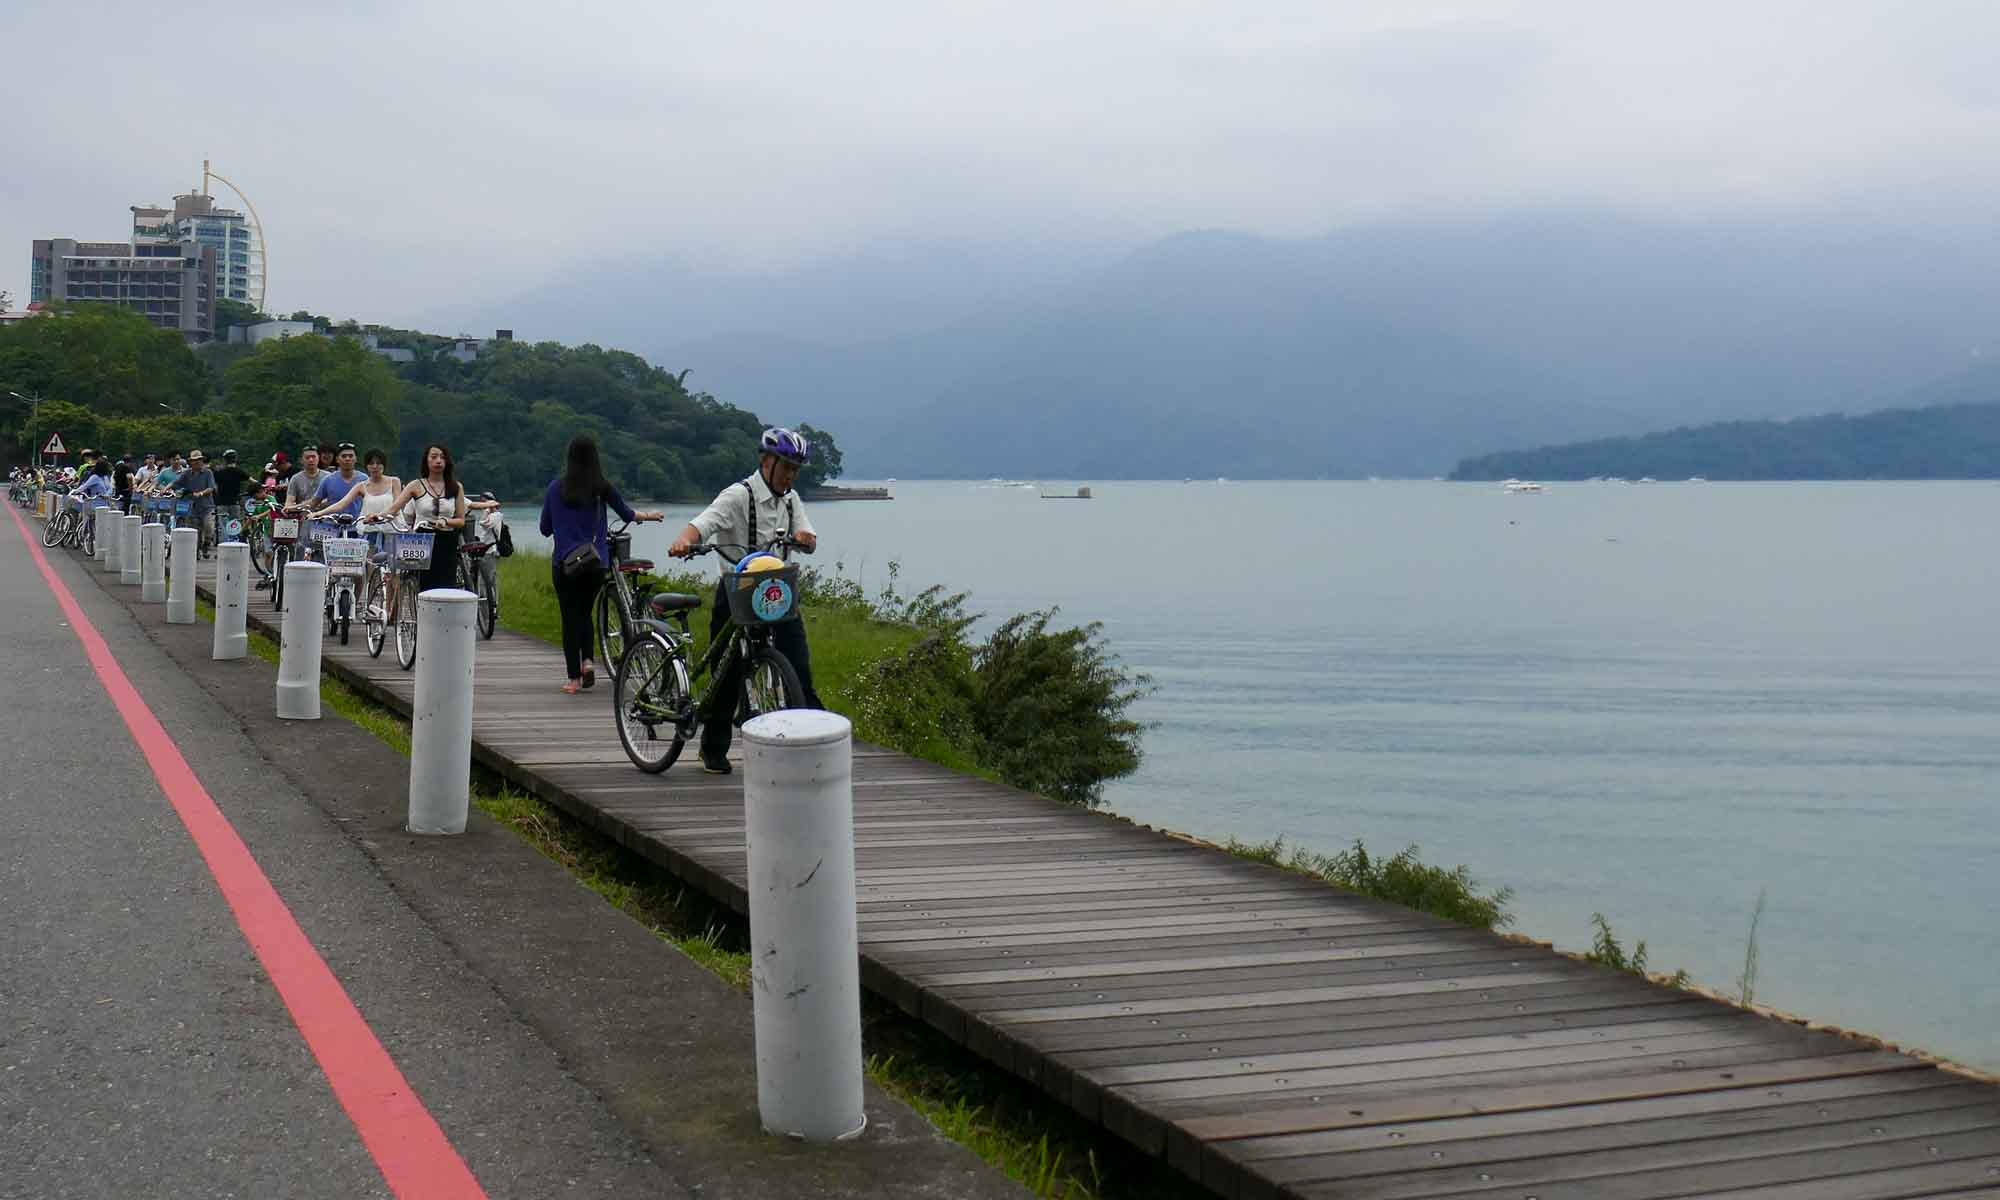 Busy with bikers around the lake